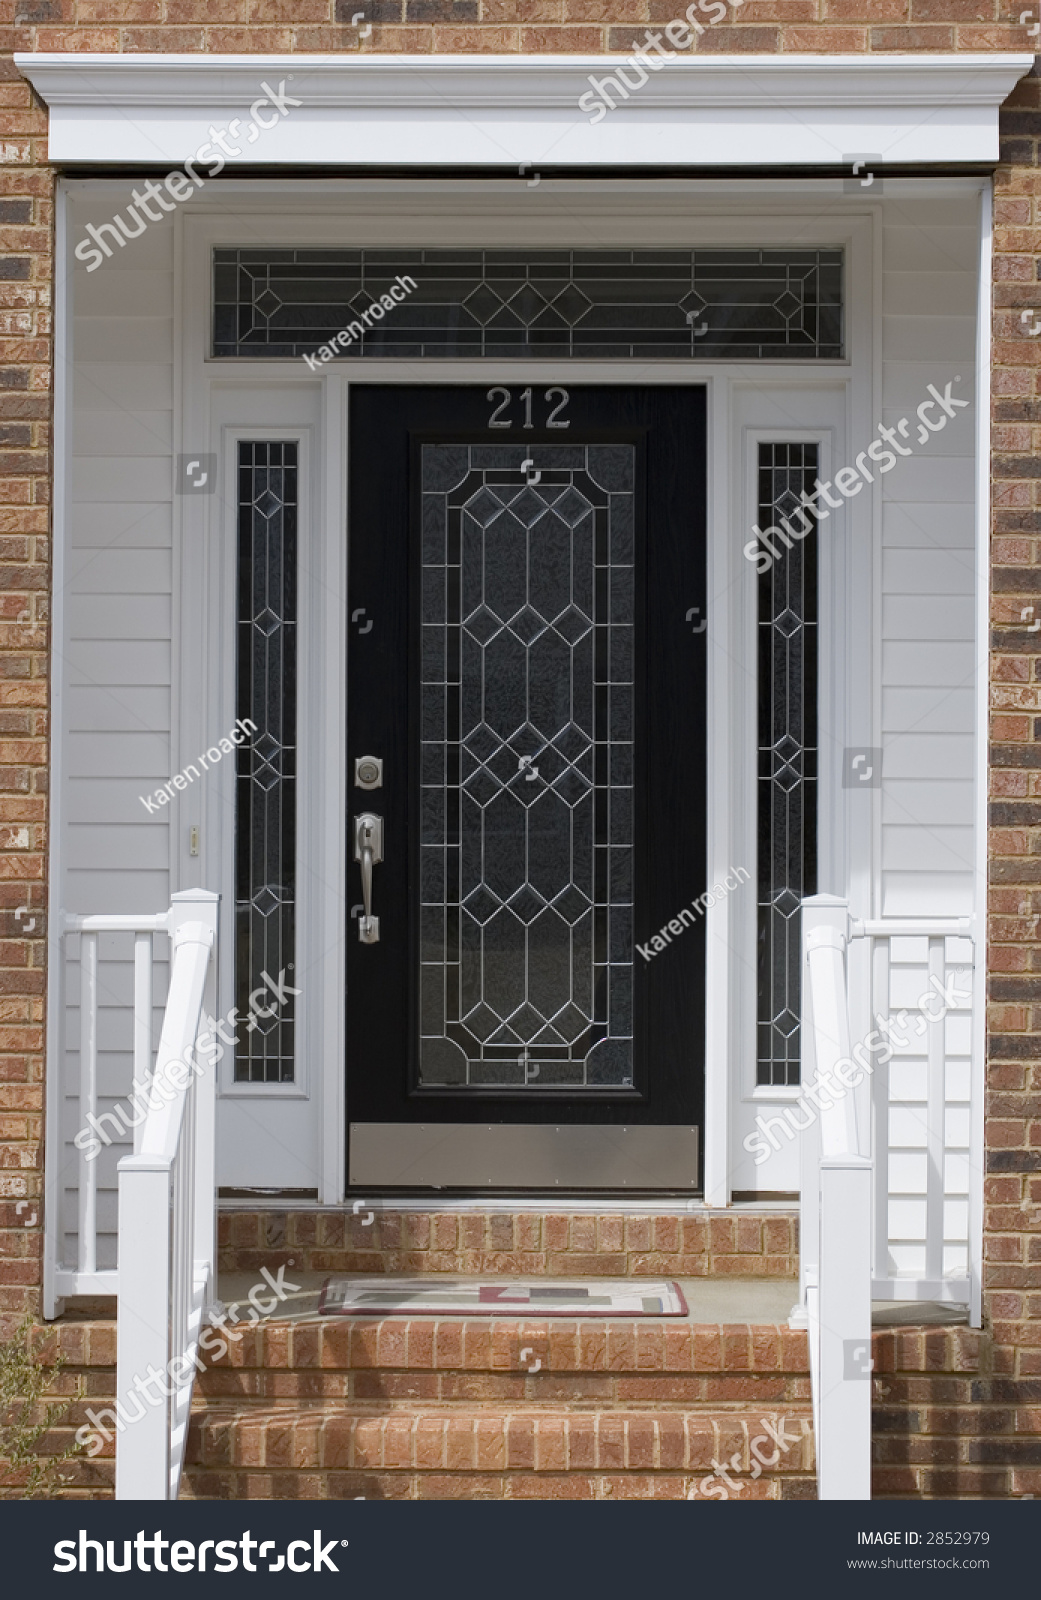 Nice front door of house from exterior view stock photo for Nice front doors